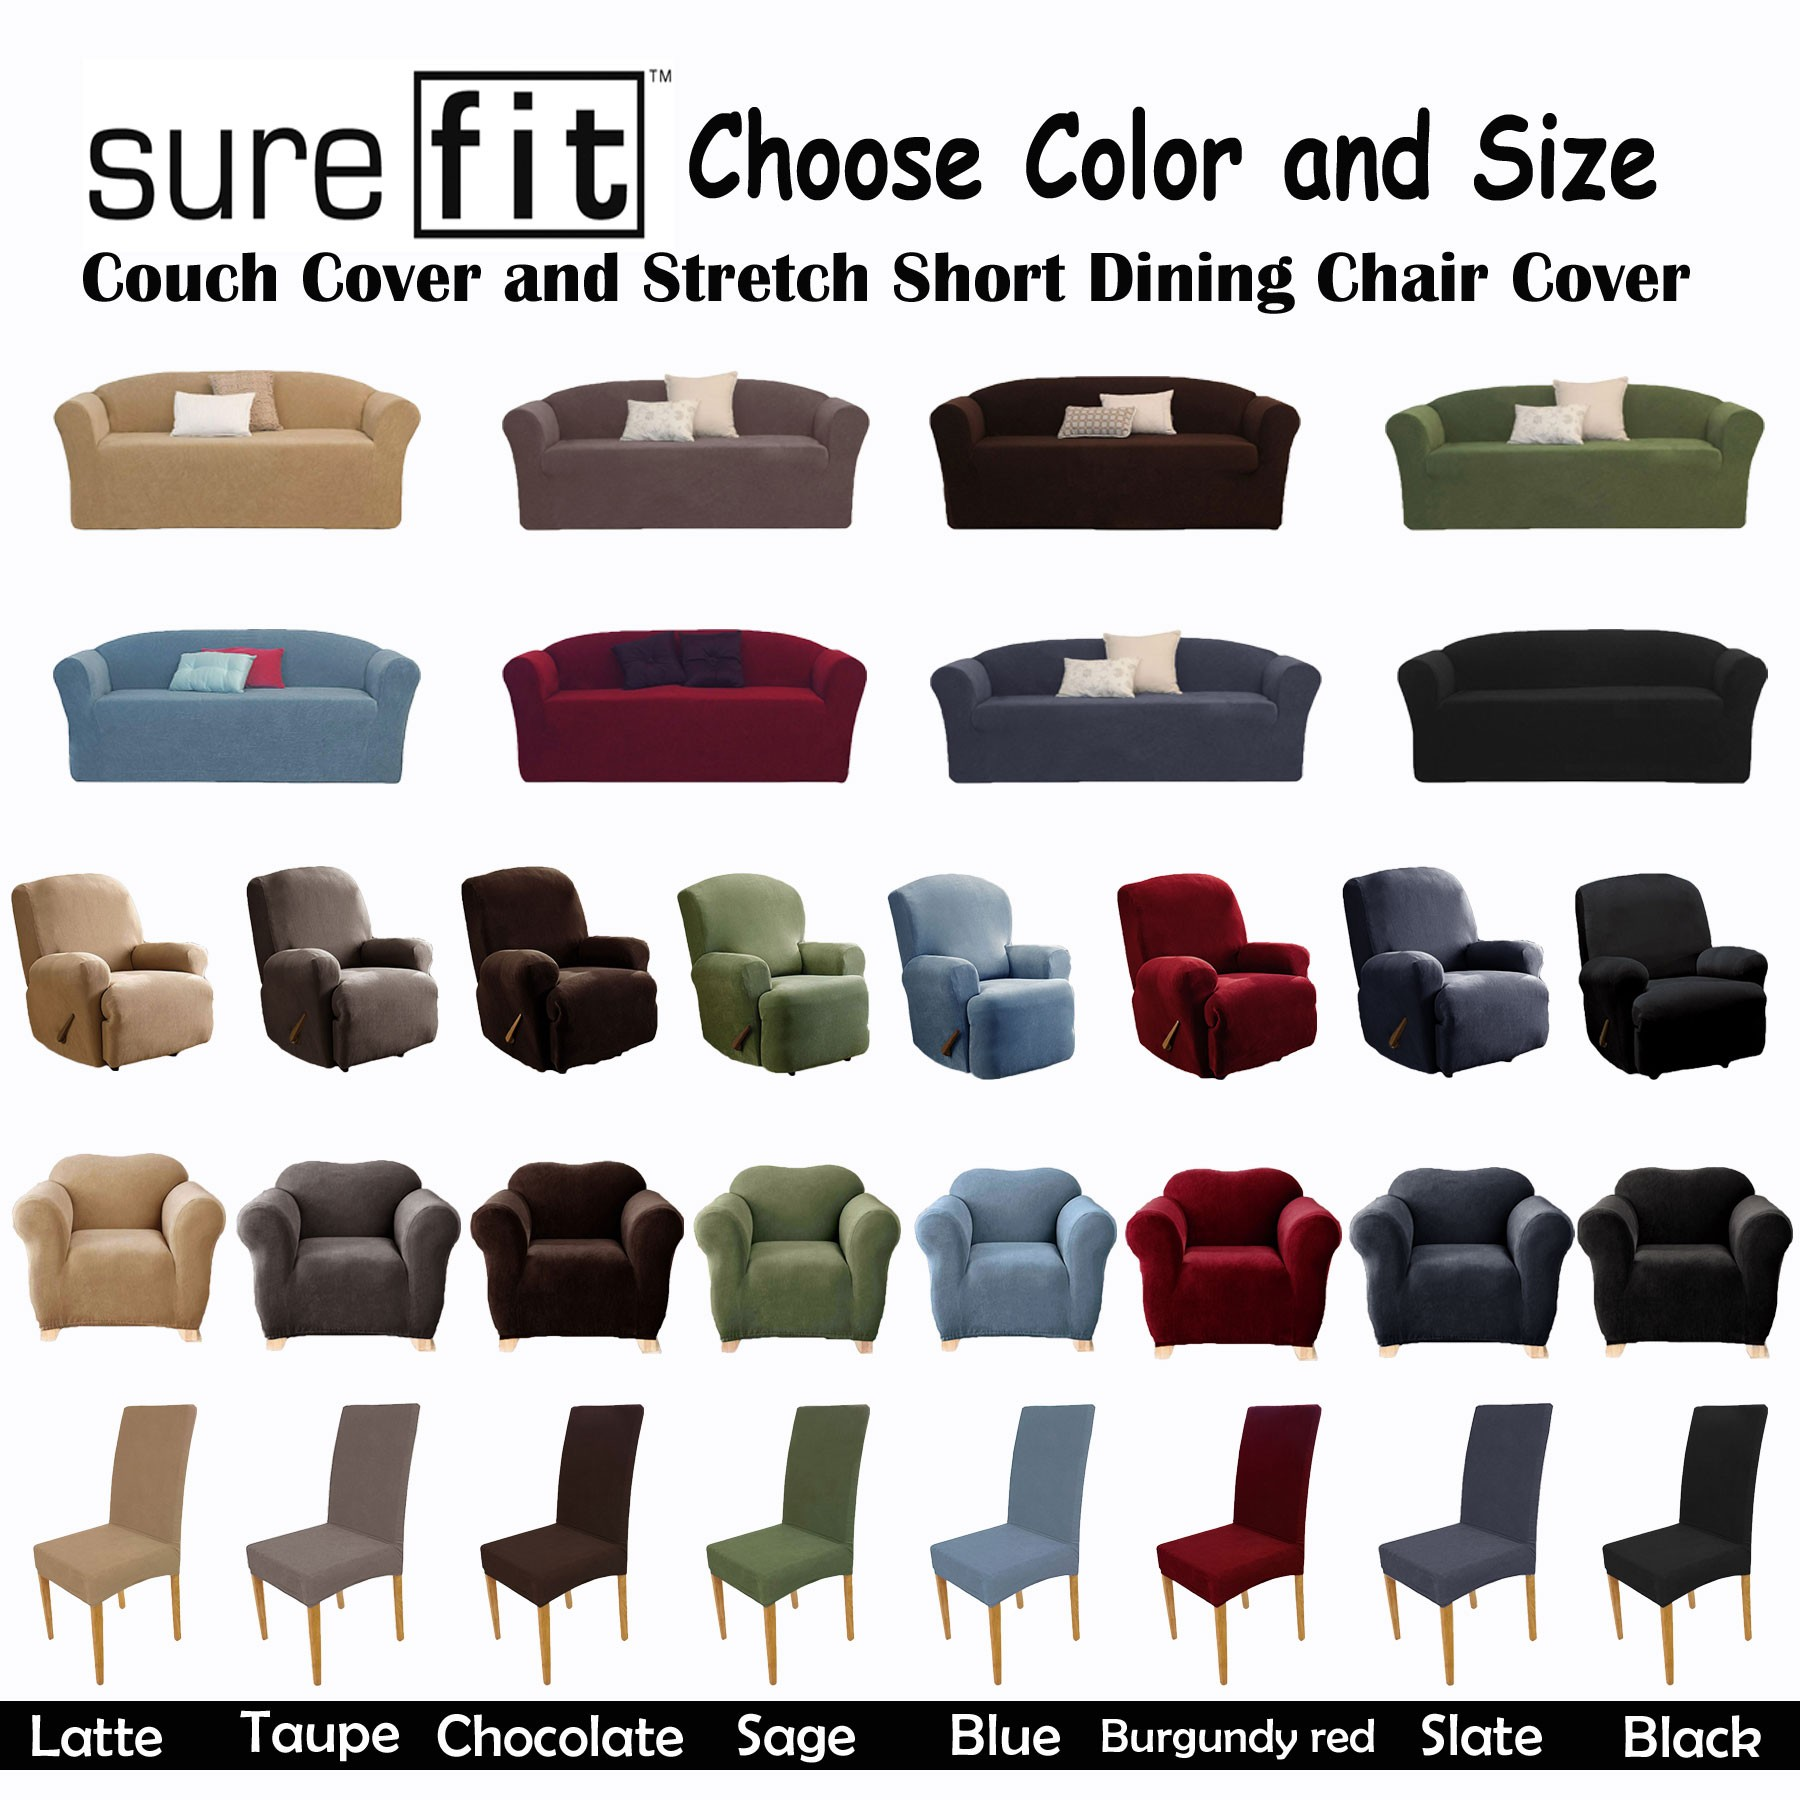 Surefit Chair Covers color options